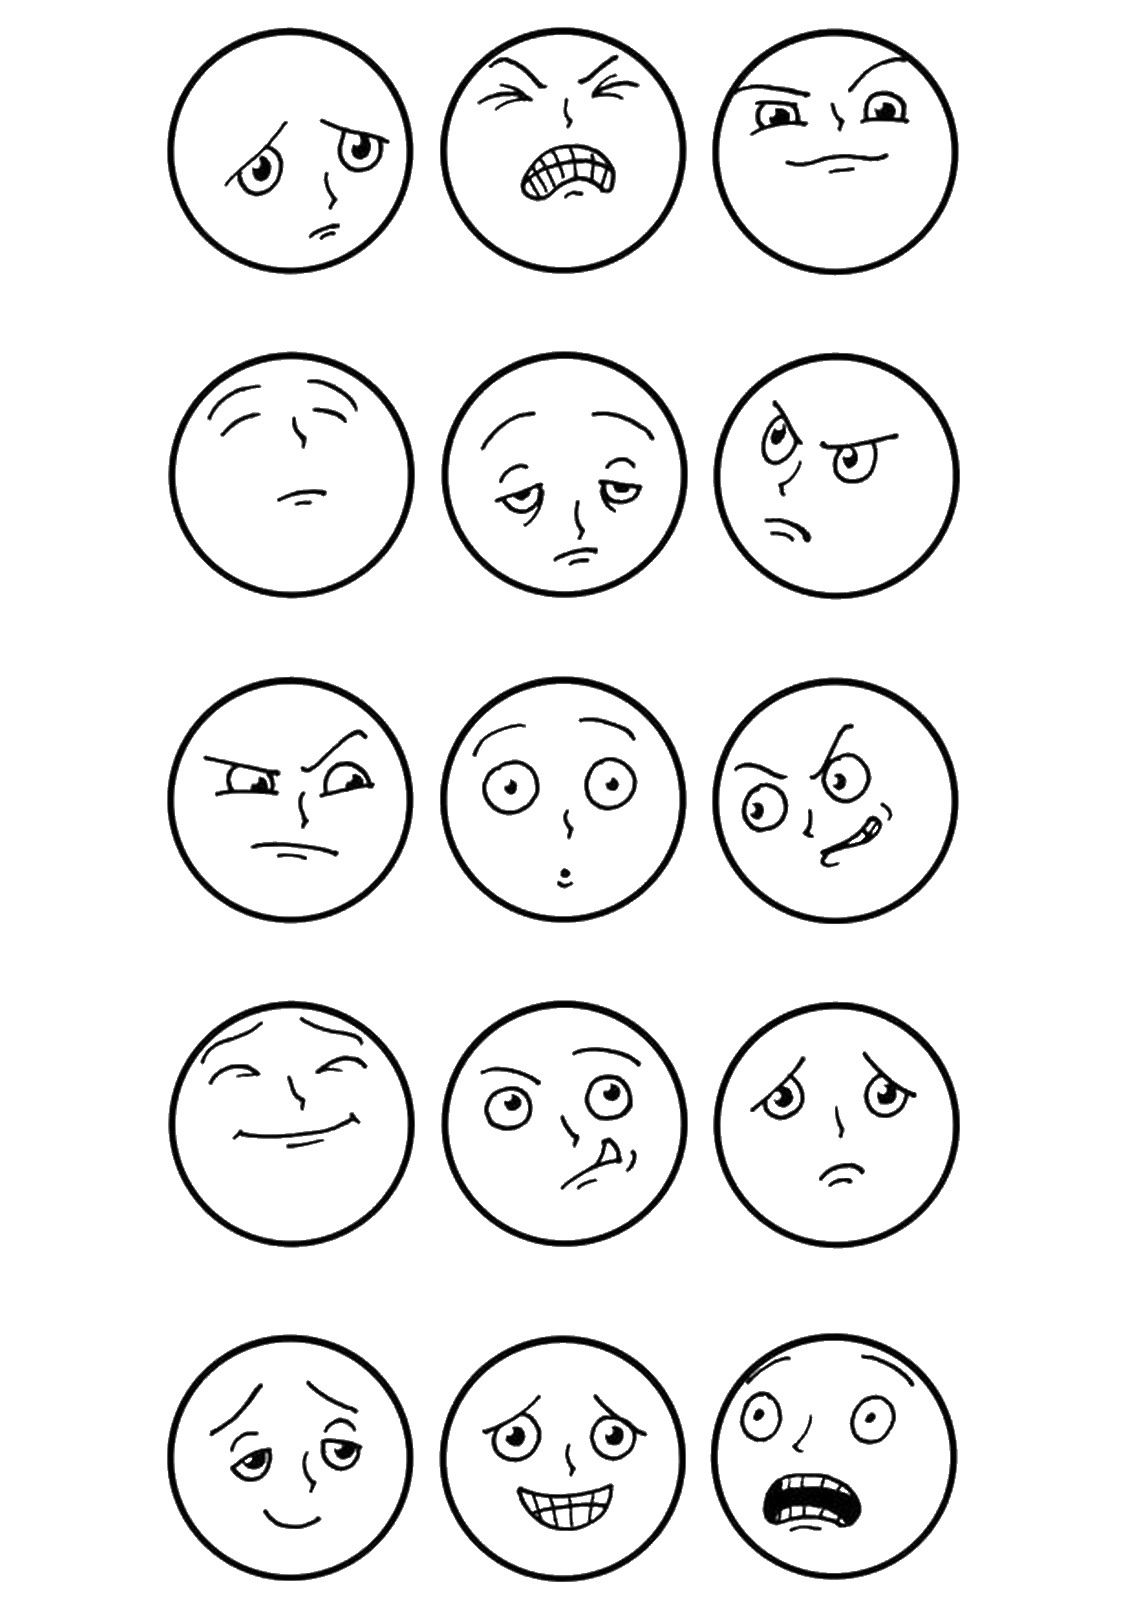 feelings coloring pages Top 20 Free Printable Emotions Coloring Pages Online | Coloring  feelings coloring pages